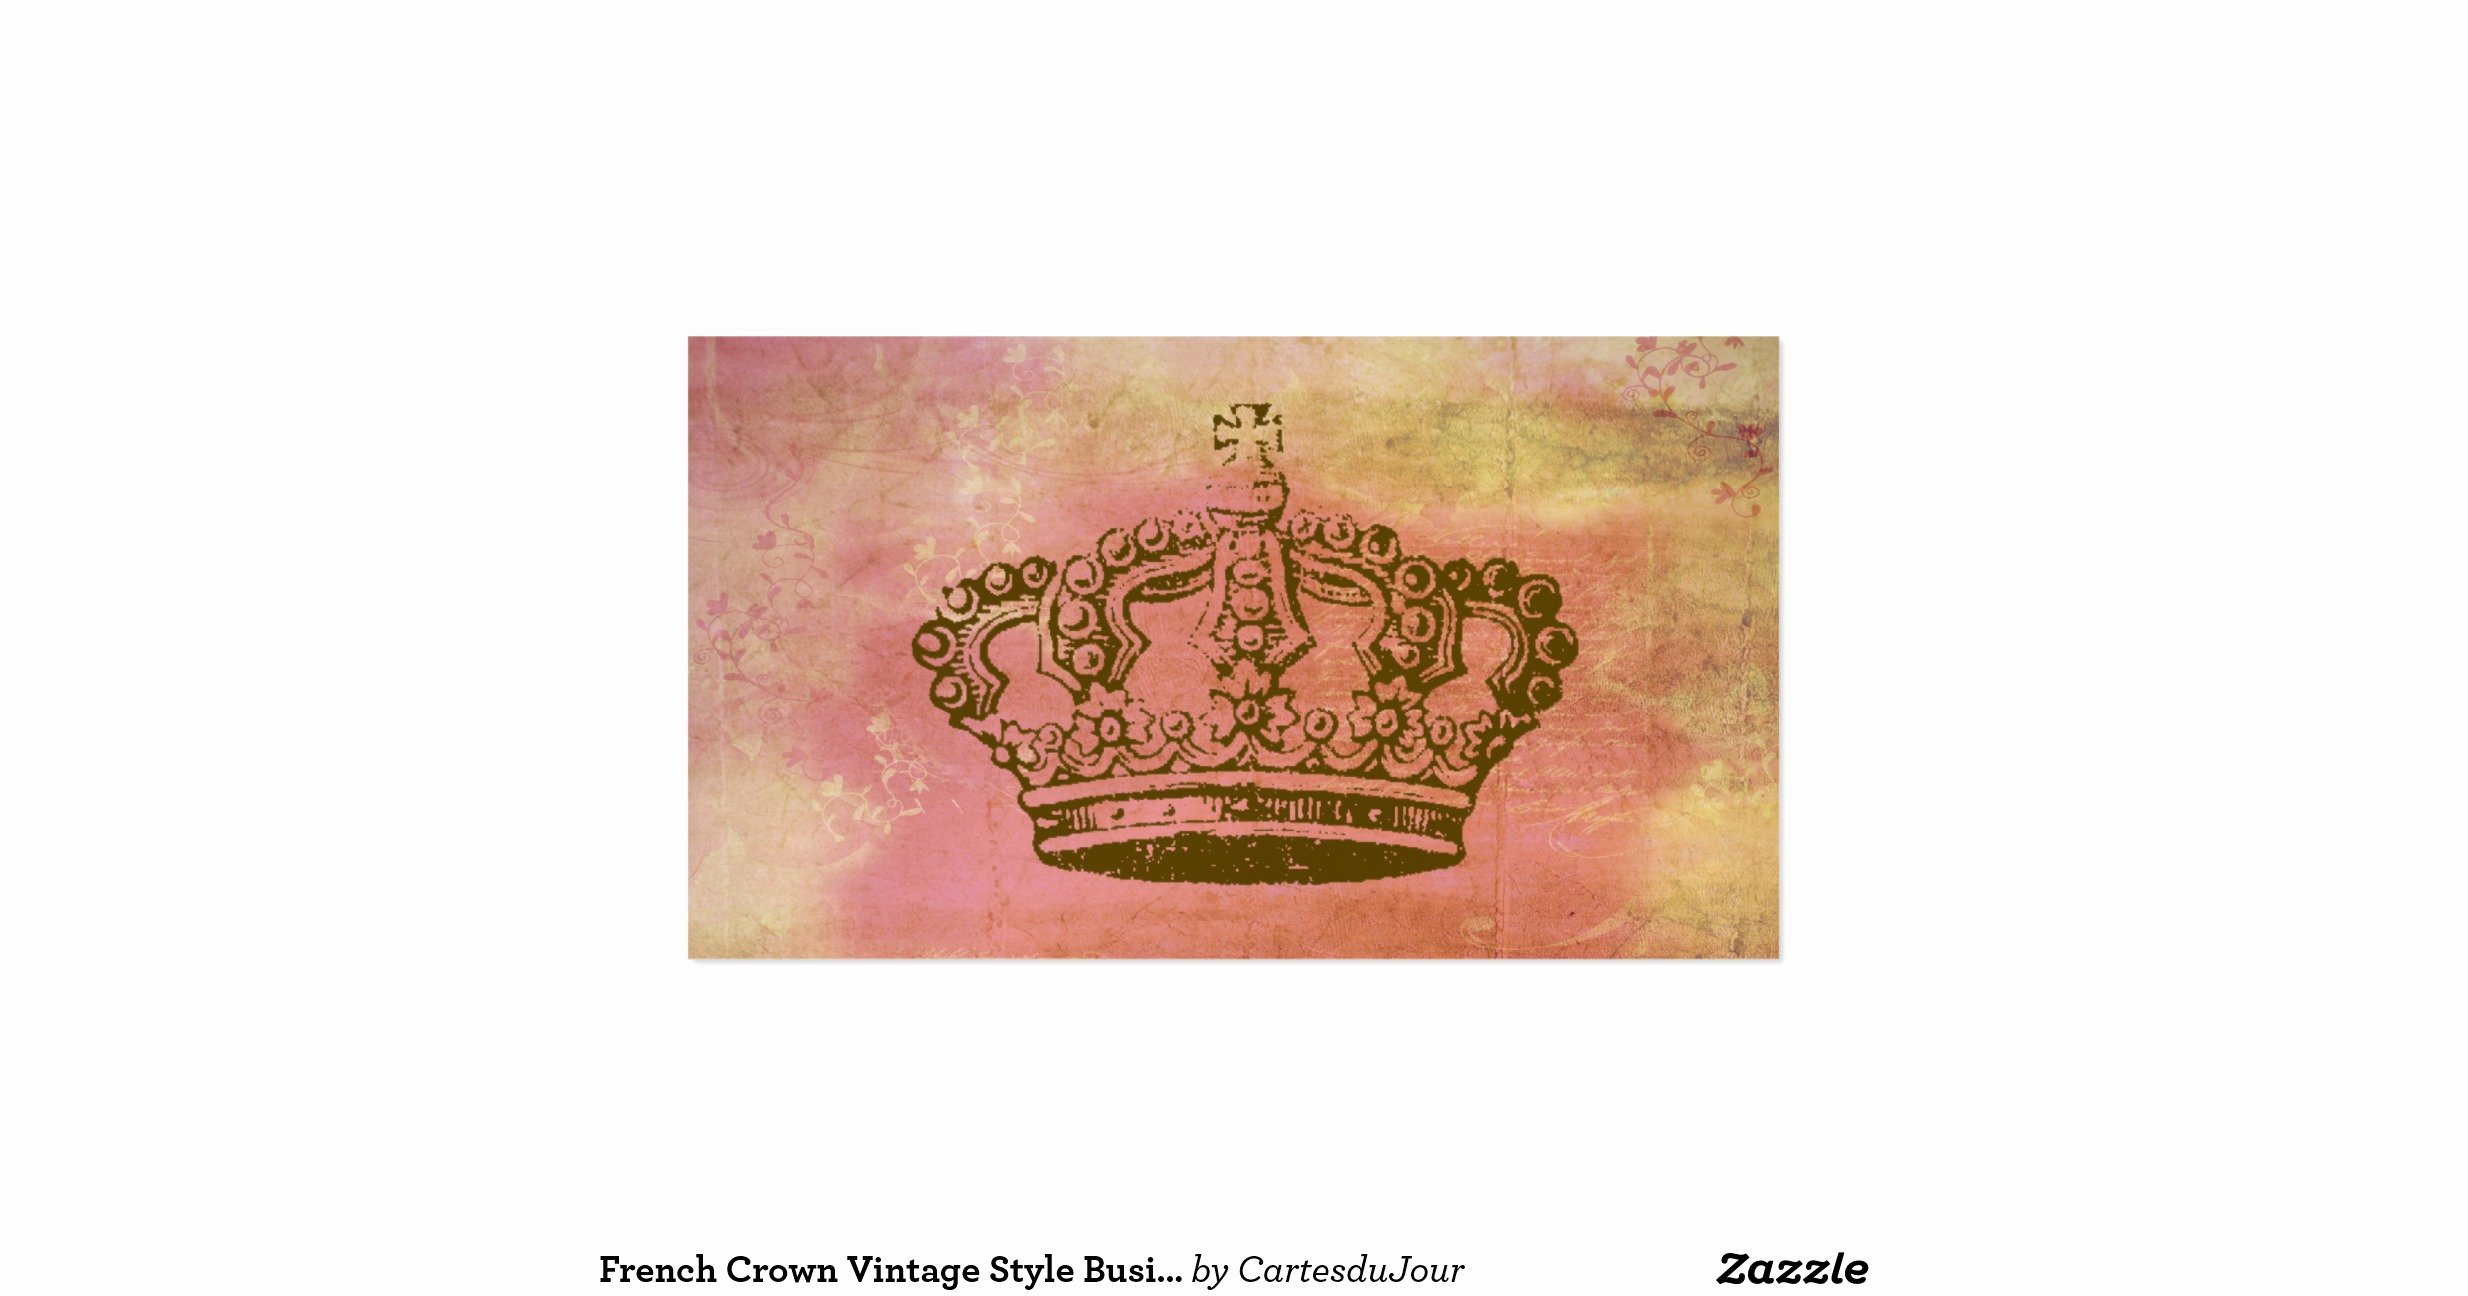 Vintage Style Business Cards Lovely French Crown Vintage Style Business Cards R492dec B4506b8563f3a6470e54c I5790 8byvr 1200